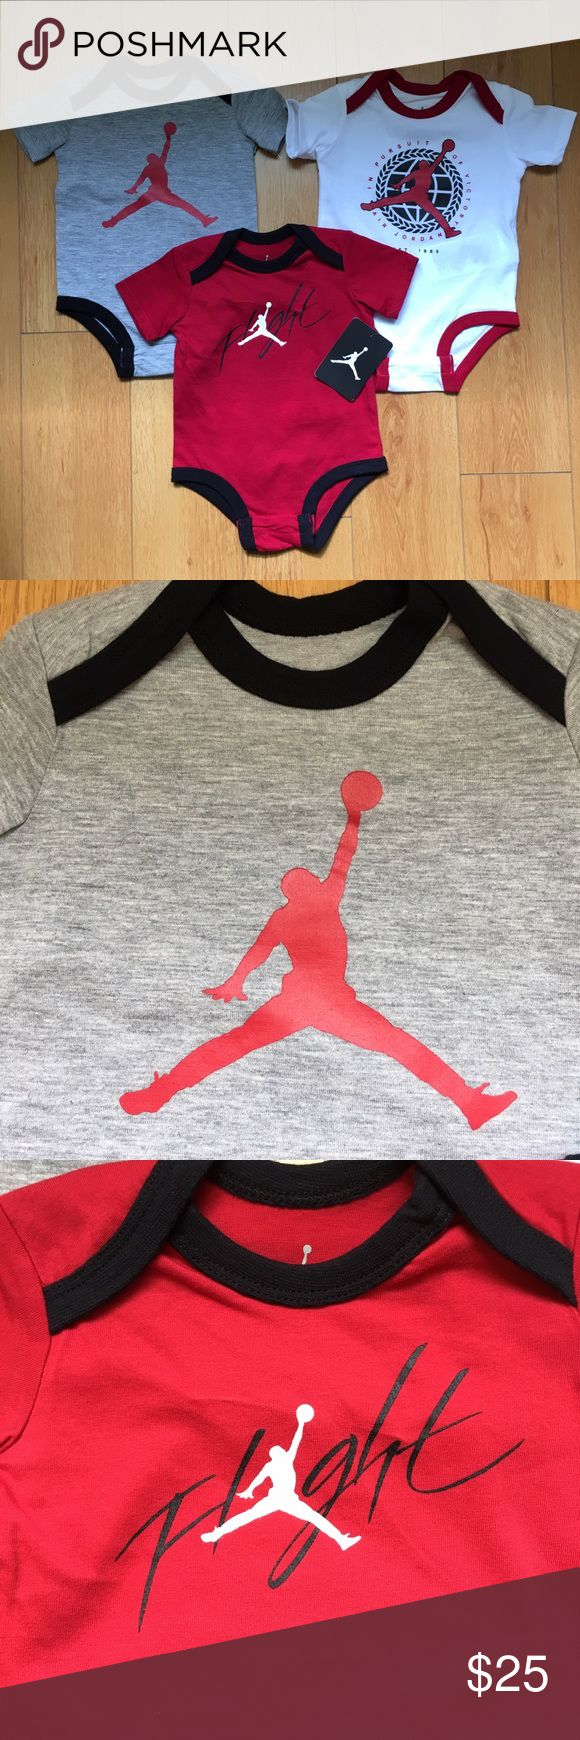 NWT Nike Jordan Baby Bodysuits NEW WITH TAGS Nike Jordan 3-Piece Baby Bodysuits.  🔹Soft 100% Cotton fabric 🔹Gray, Red, White with Screen Printed designs on front and contrasting trim. 🔹Bottom snaps for easy diaper changes 🔹These are sold as a set, not individually  👍🏻Top Rated Seller 👍🏻Fast Shipper 🚫No Trades  Instagram: @effortless_beauty_boutique Jordan One Pieces Bodysuits